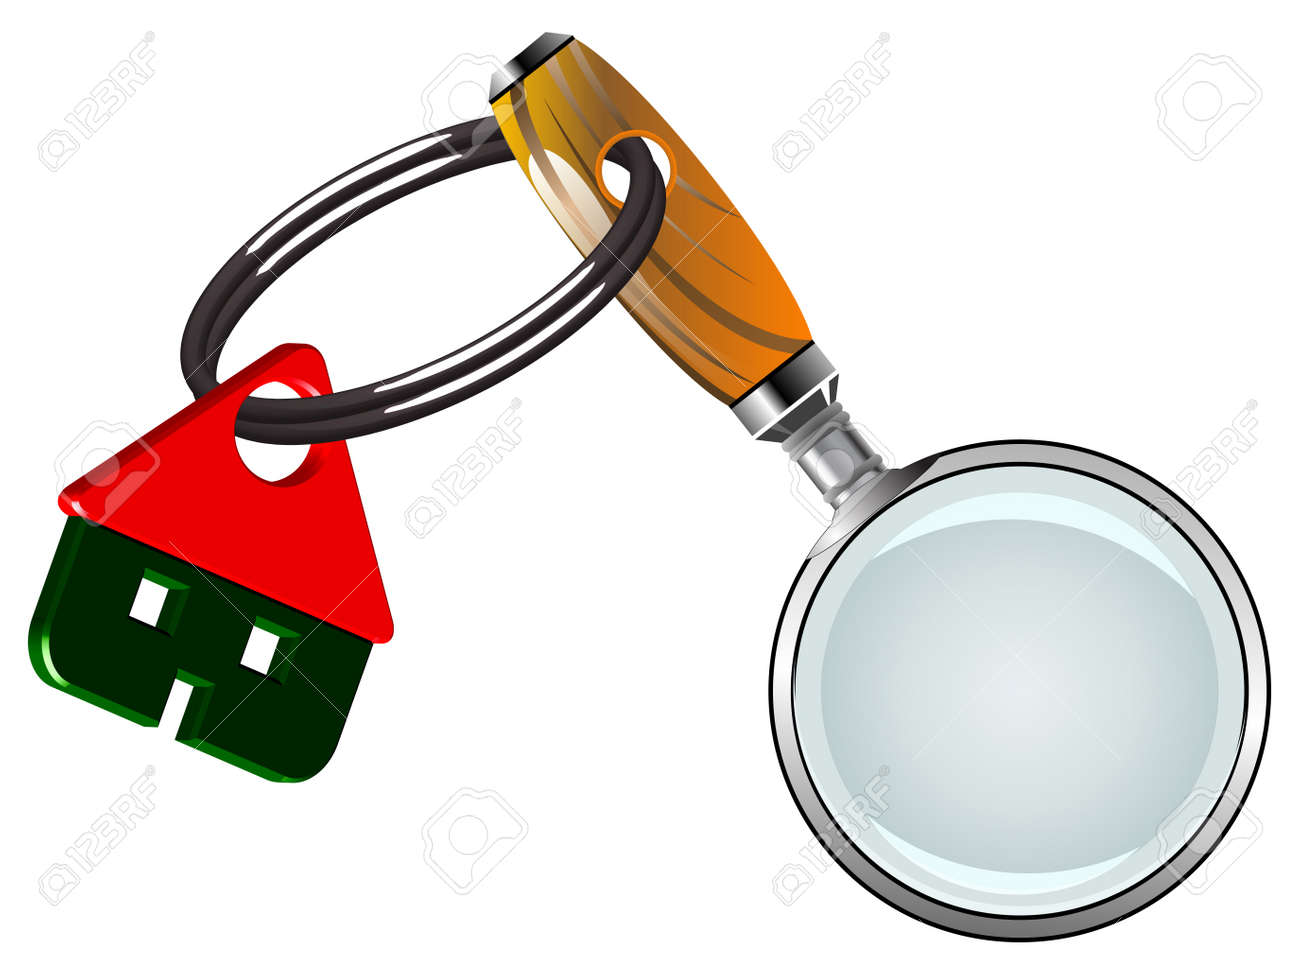 house and magnifying glass against white background, abstract vector art illustration Stock Vector - 17721985